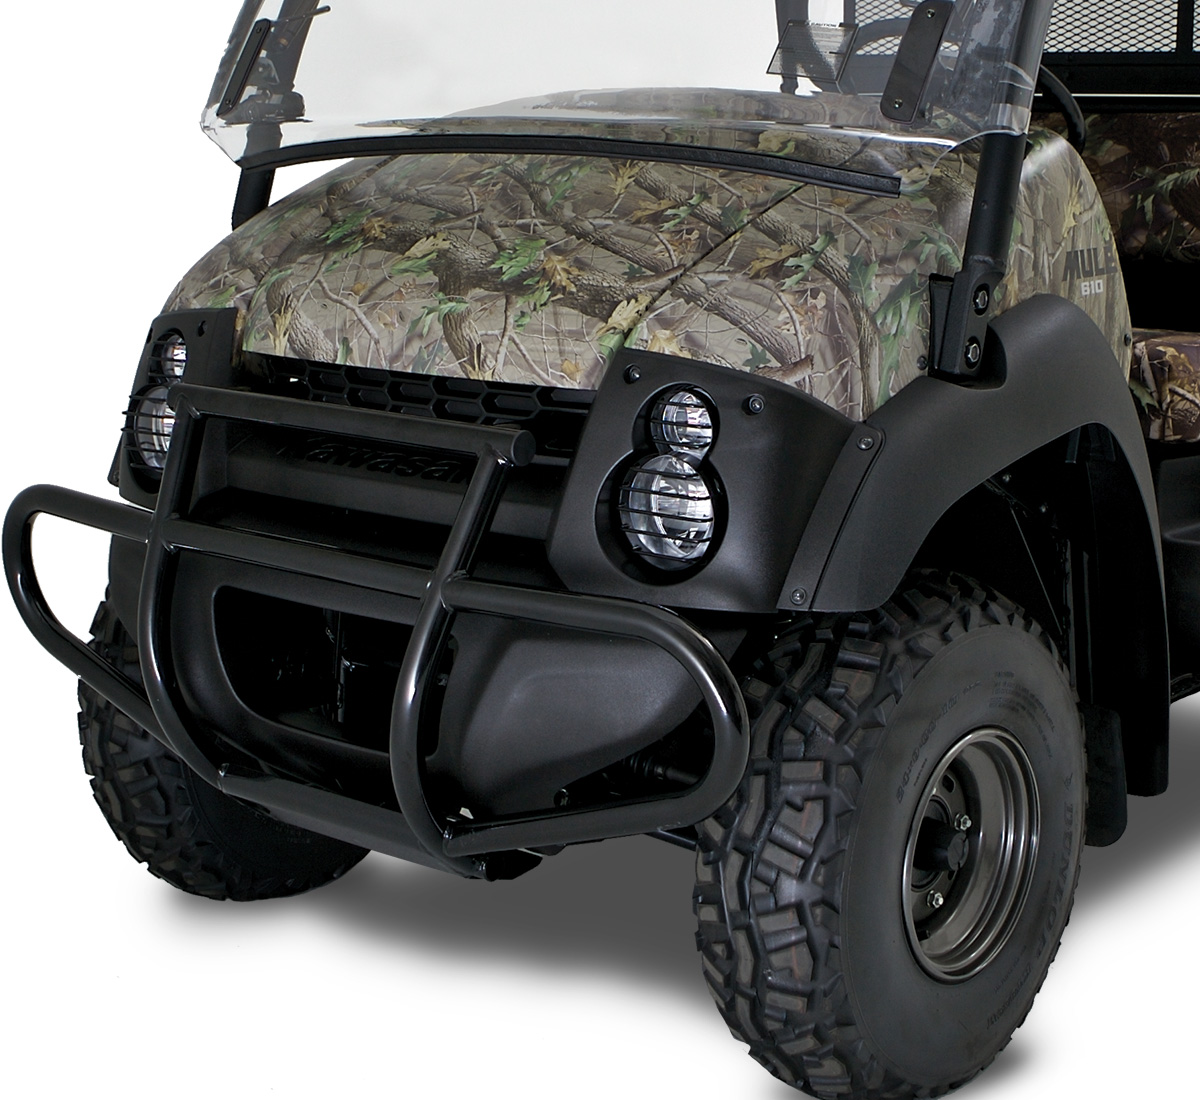 2014 Mule™ 610 4x4 XC Accessories on